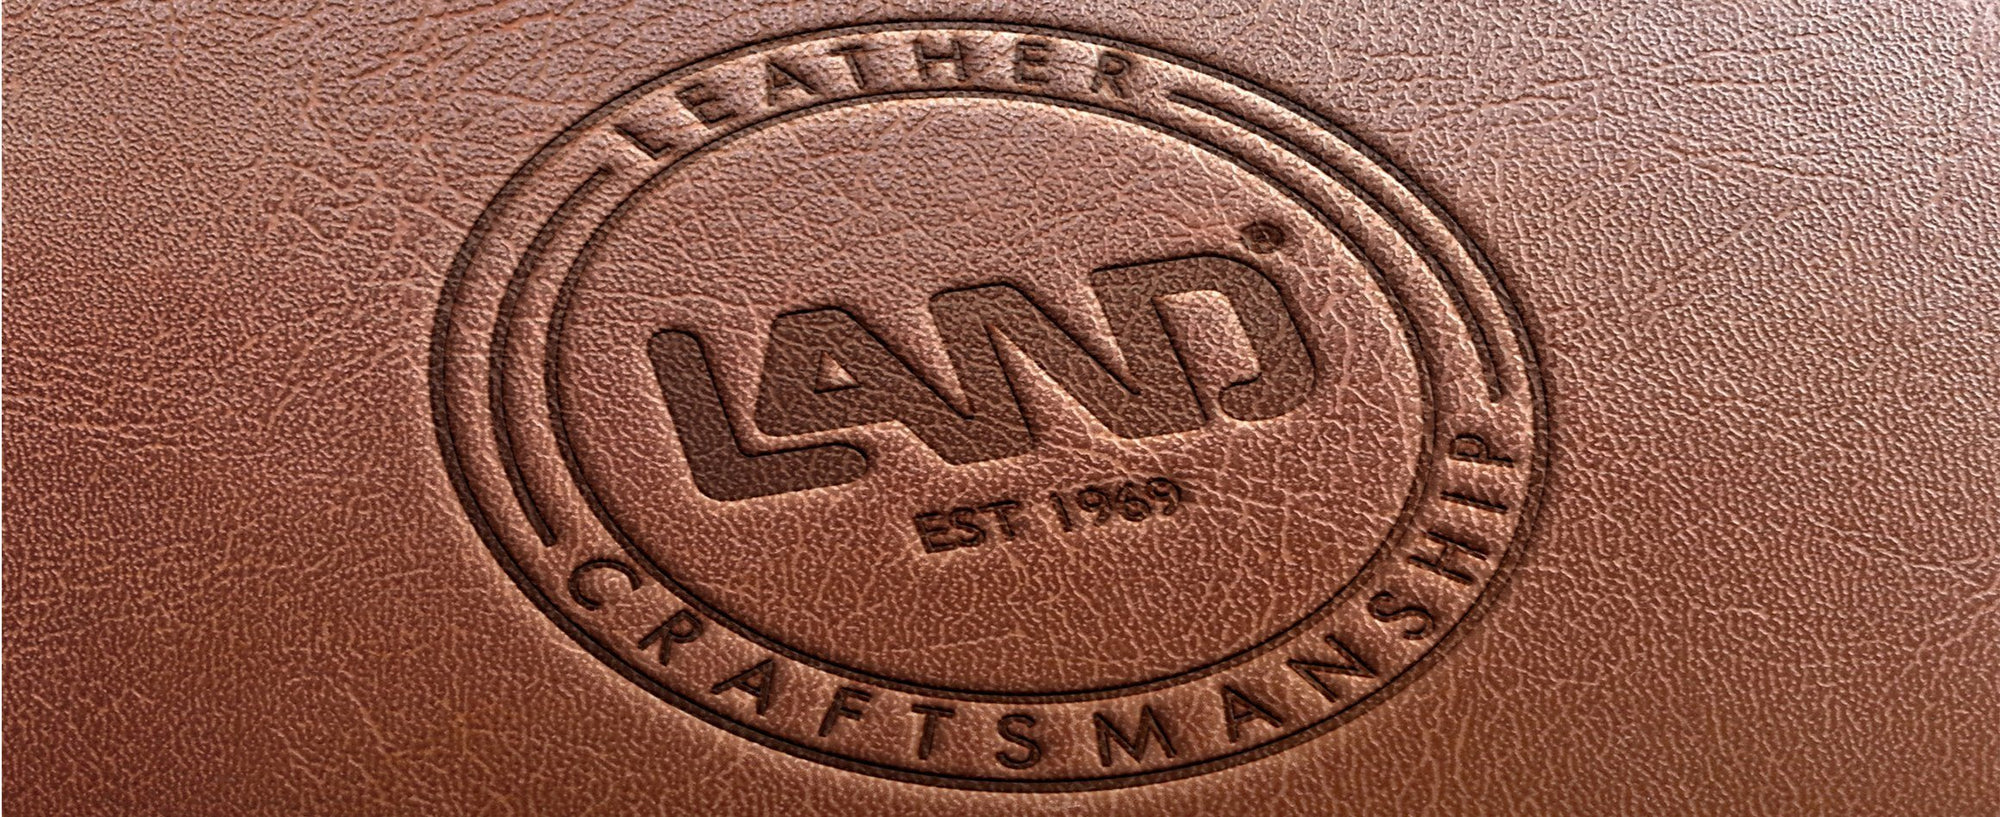 History of Leather